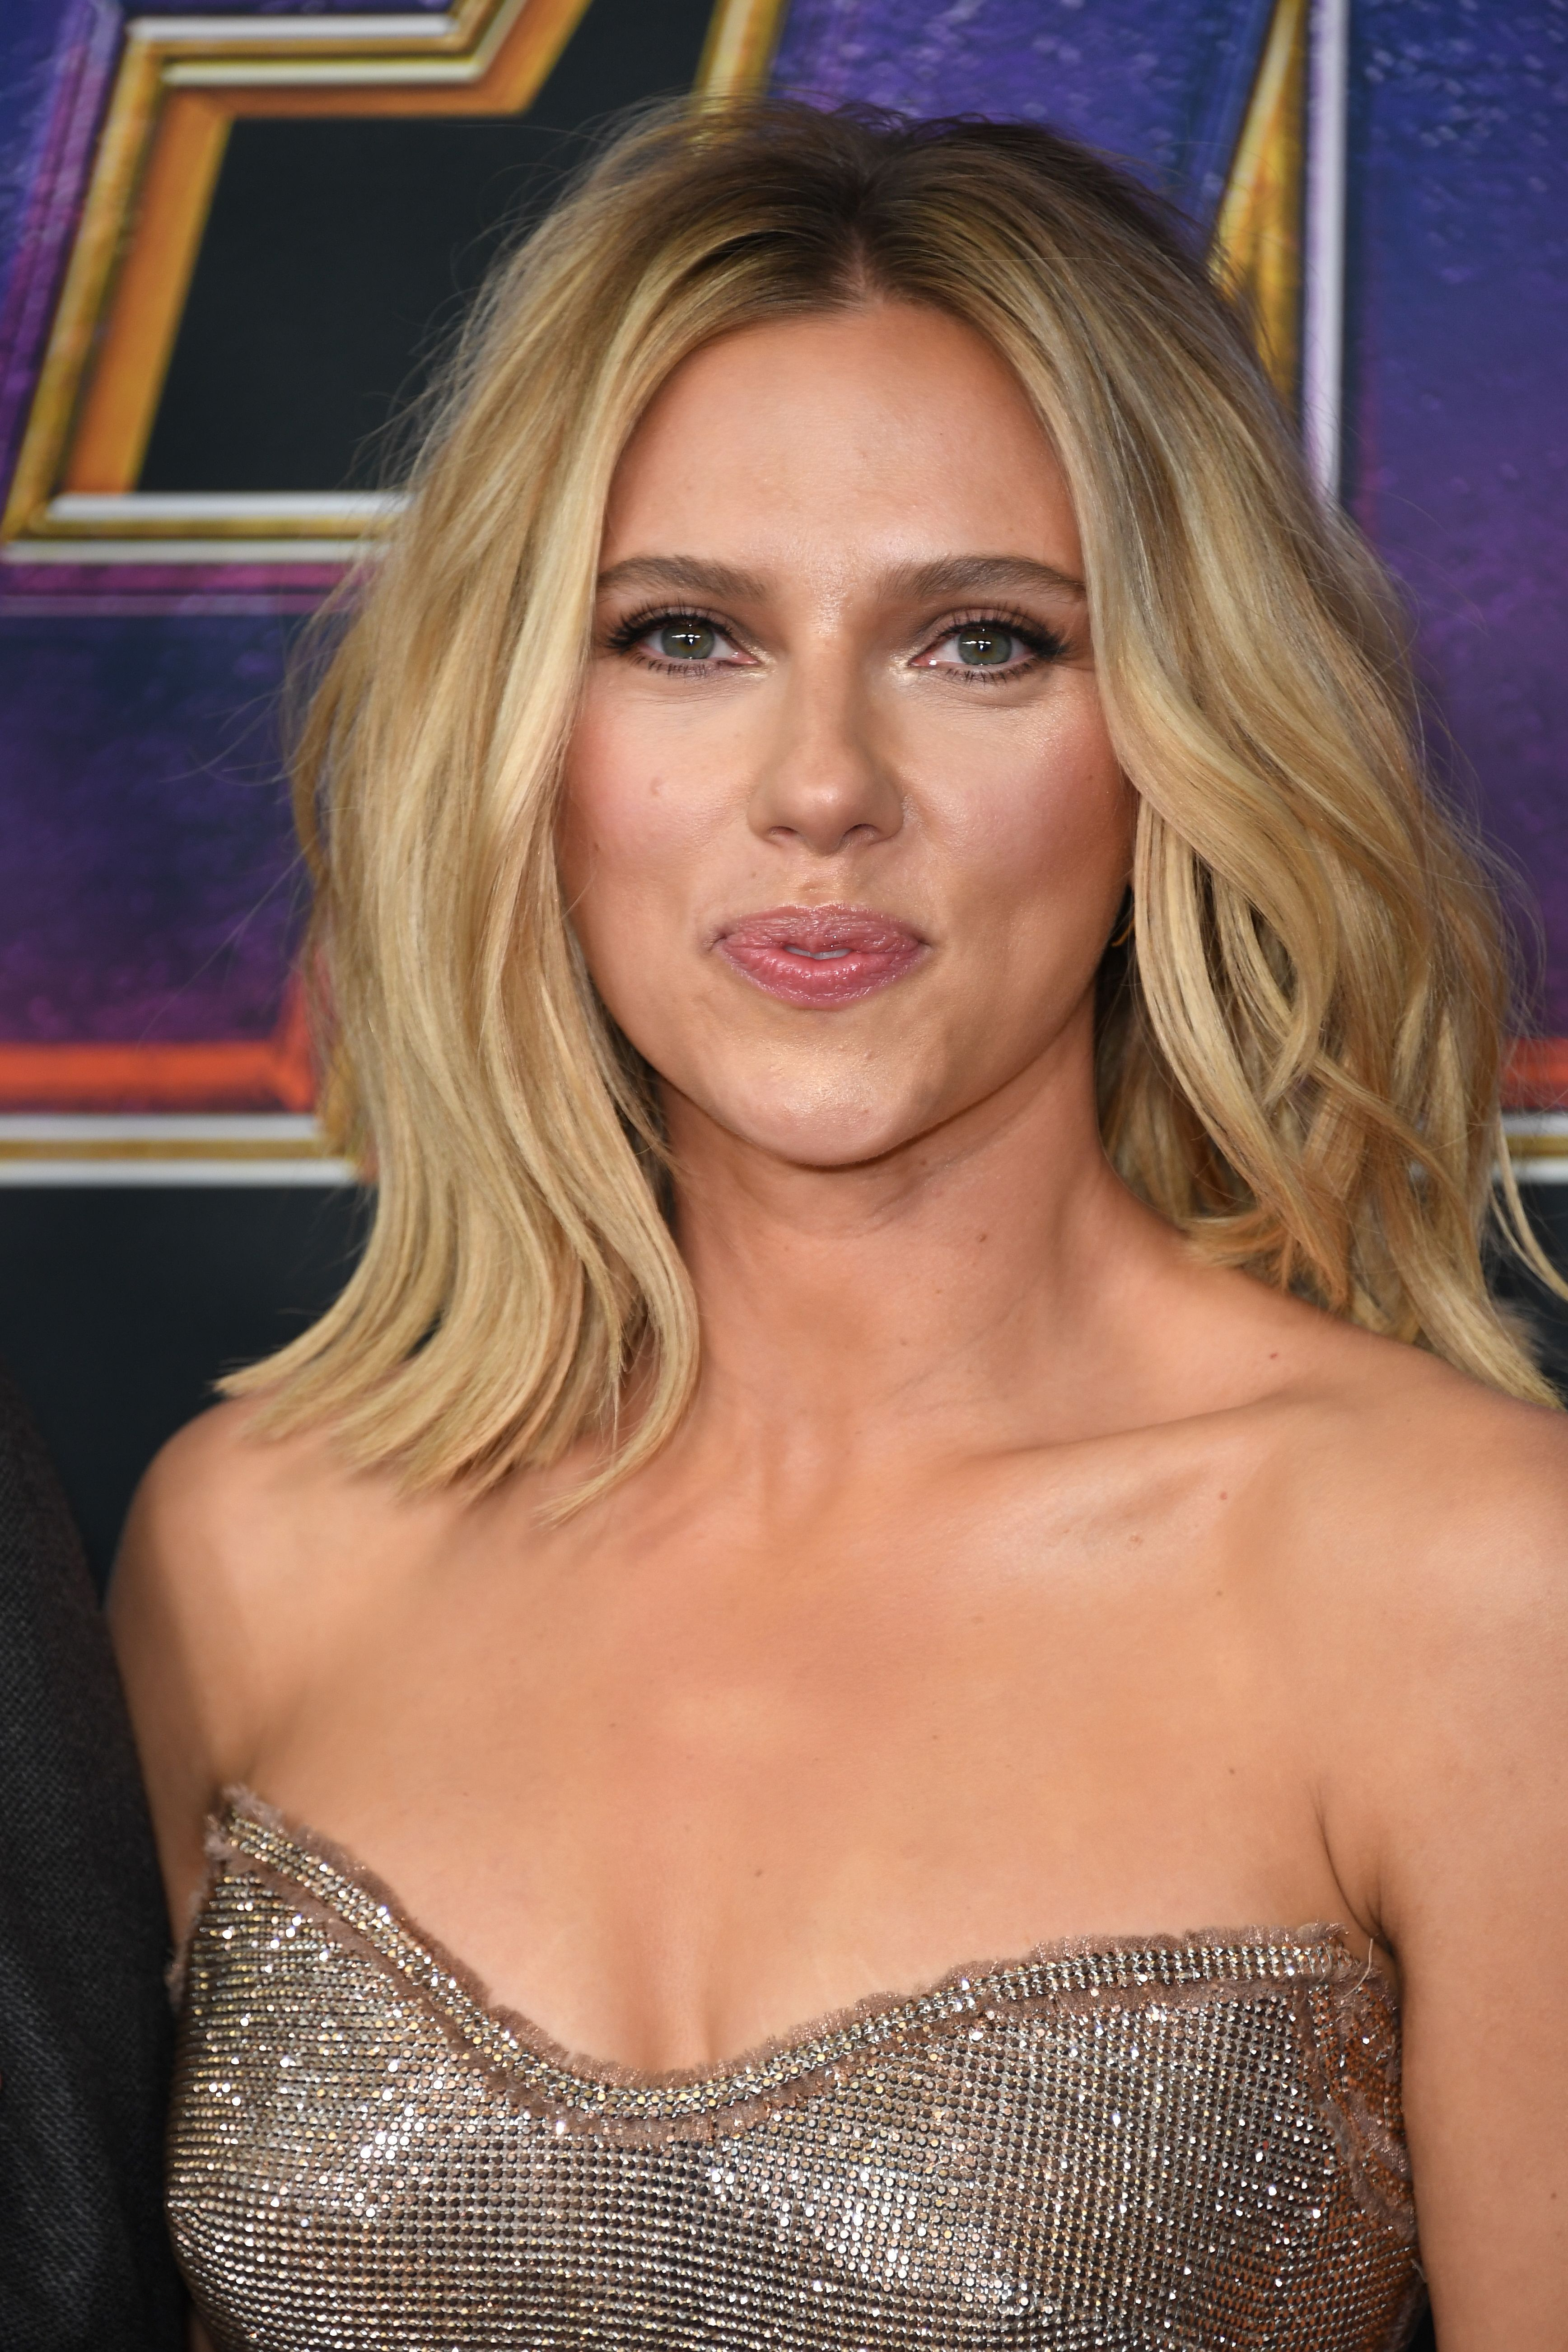 Scarlett Johansson At The Avengers Endgame Premiere Photo Credits Getty Images Mid Length Hair Hair Lengths Scarlett Johansson